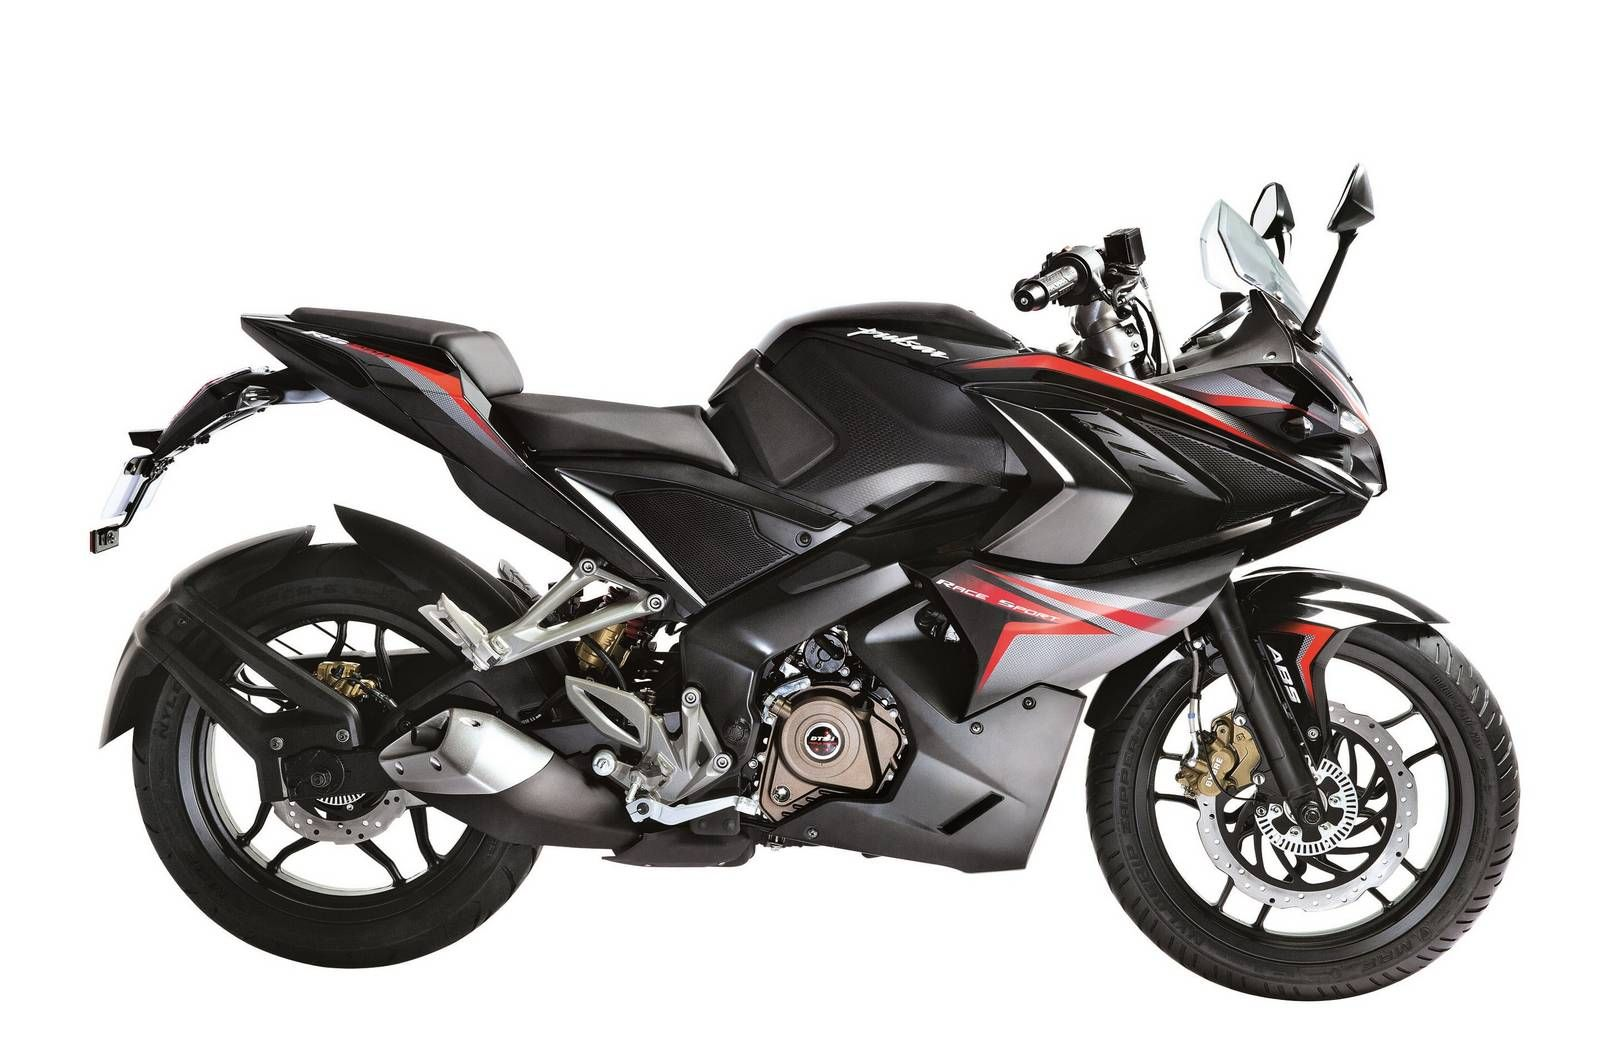 Bajaj Pulsar Rs 200 Fear The Black Edition Launched Black